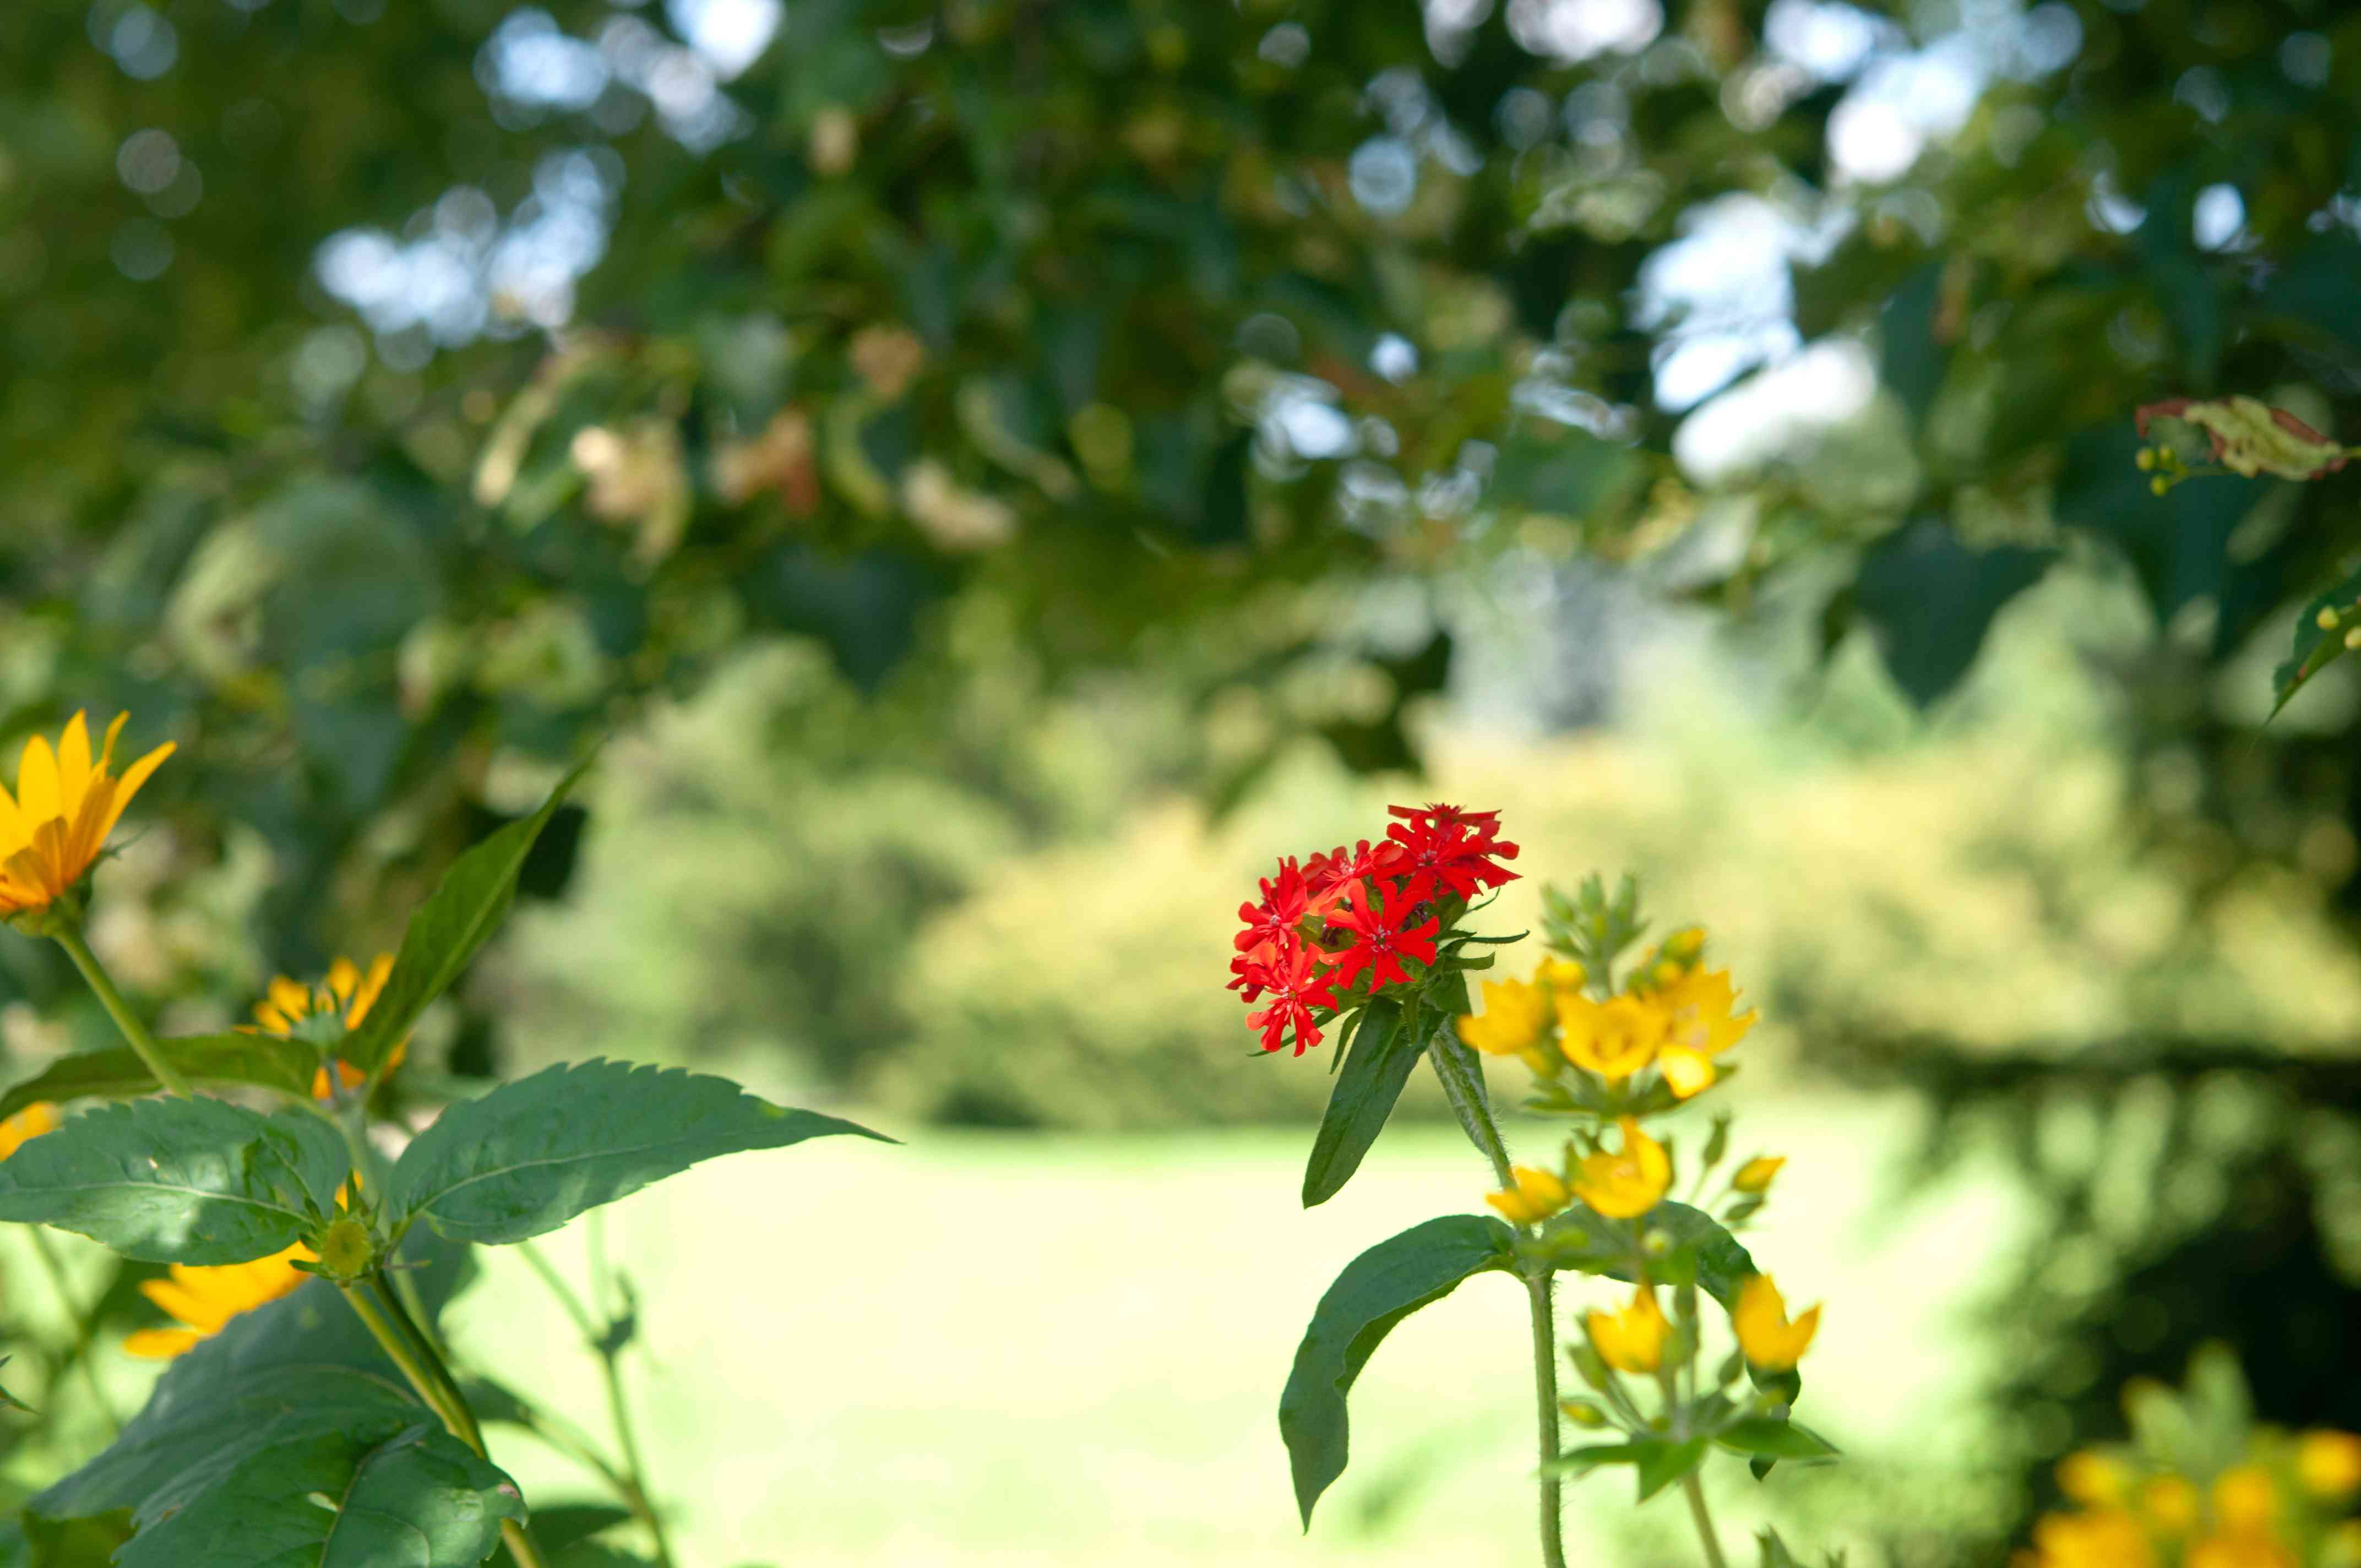 Maltese crown plant with single thin stem and red flower cluster in middle of yellow wildflowers